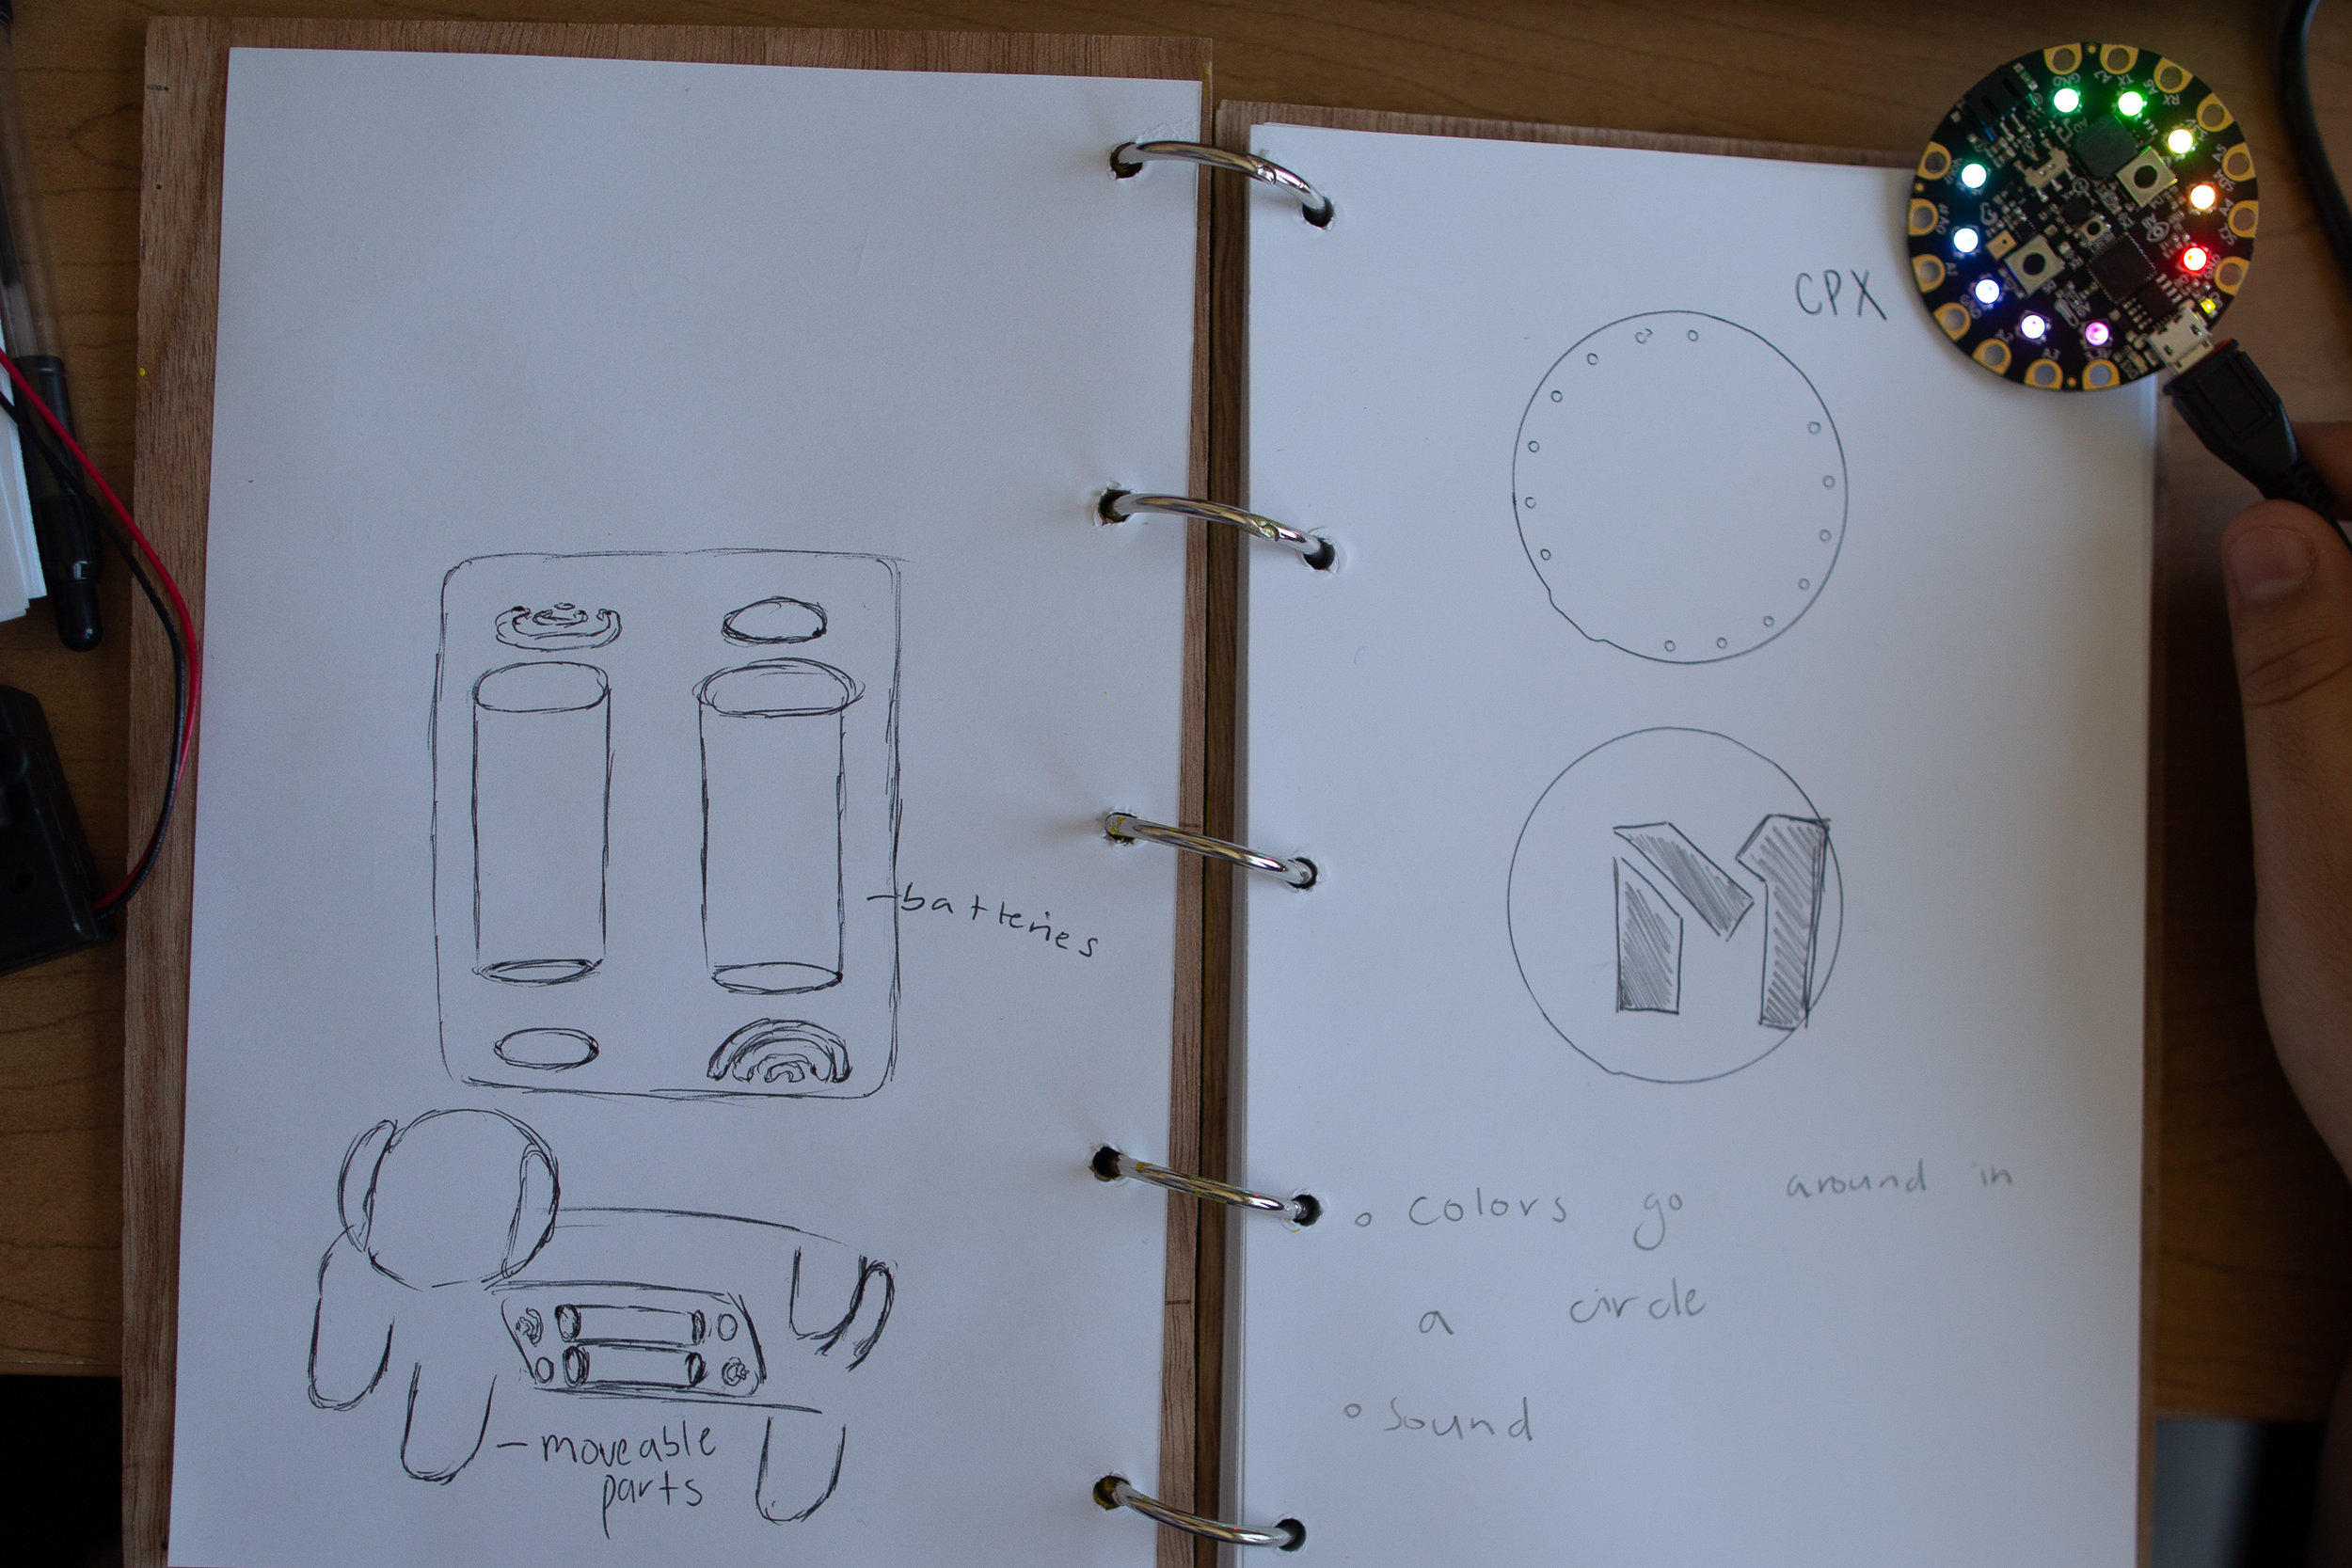 Example : A student's design journal in Code Park's Invent to Learn Program at Fab Lab Houston. She is prototyping a design by describing the behavior of her circuit board as well as making a drawing of a 3D printed design. July 2018. Courtesy of Wanjun Zhang.